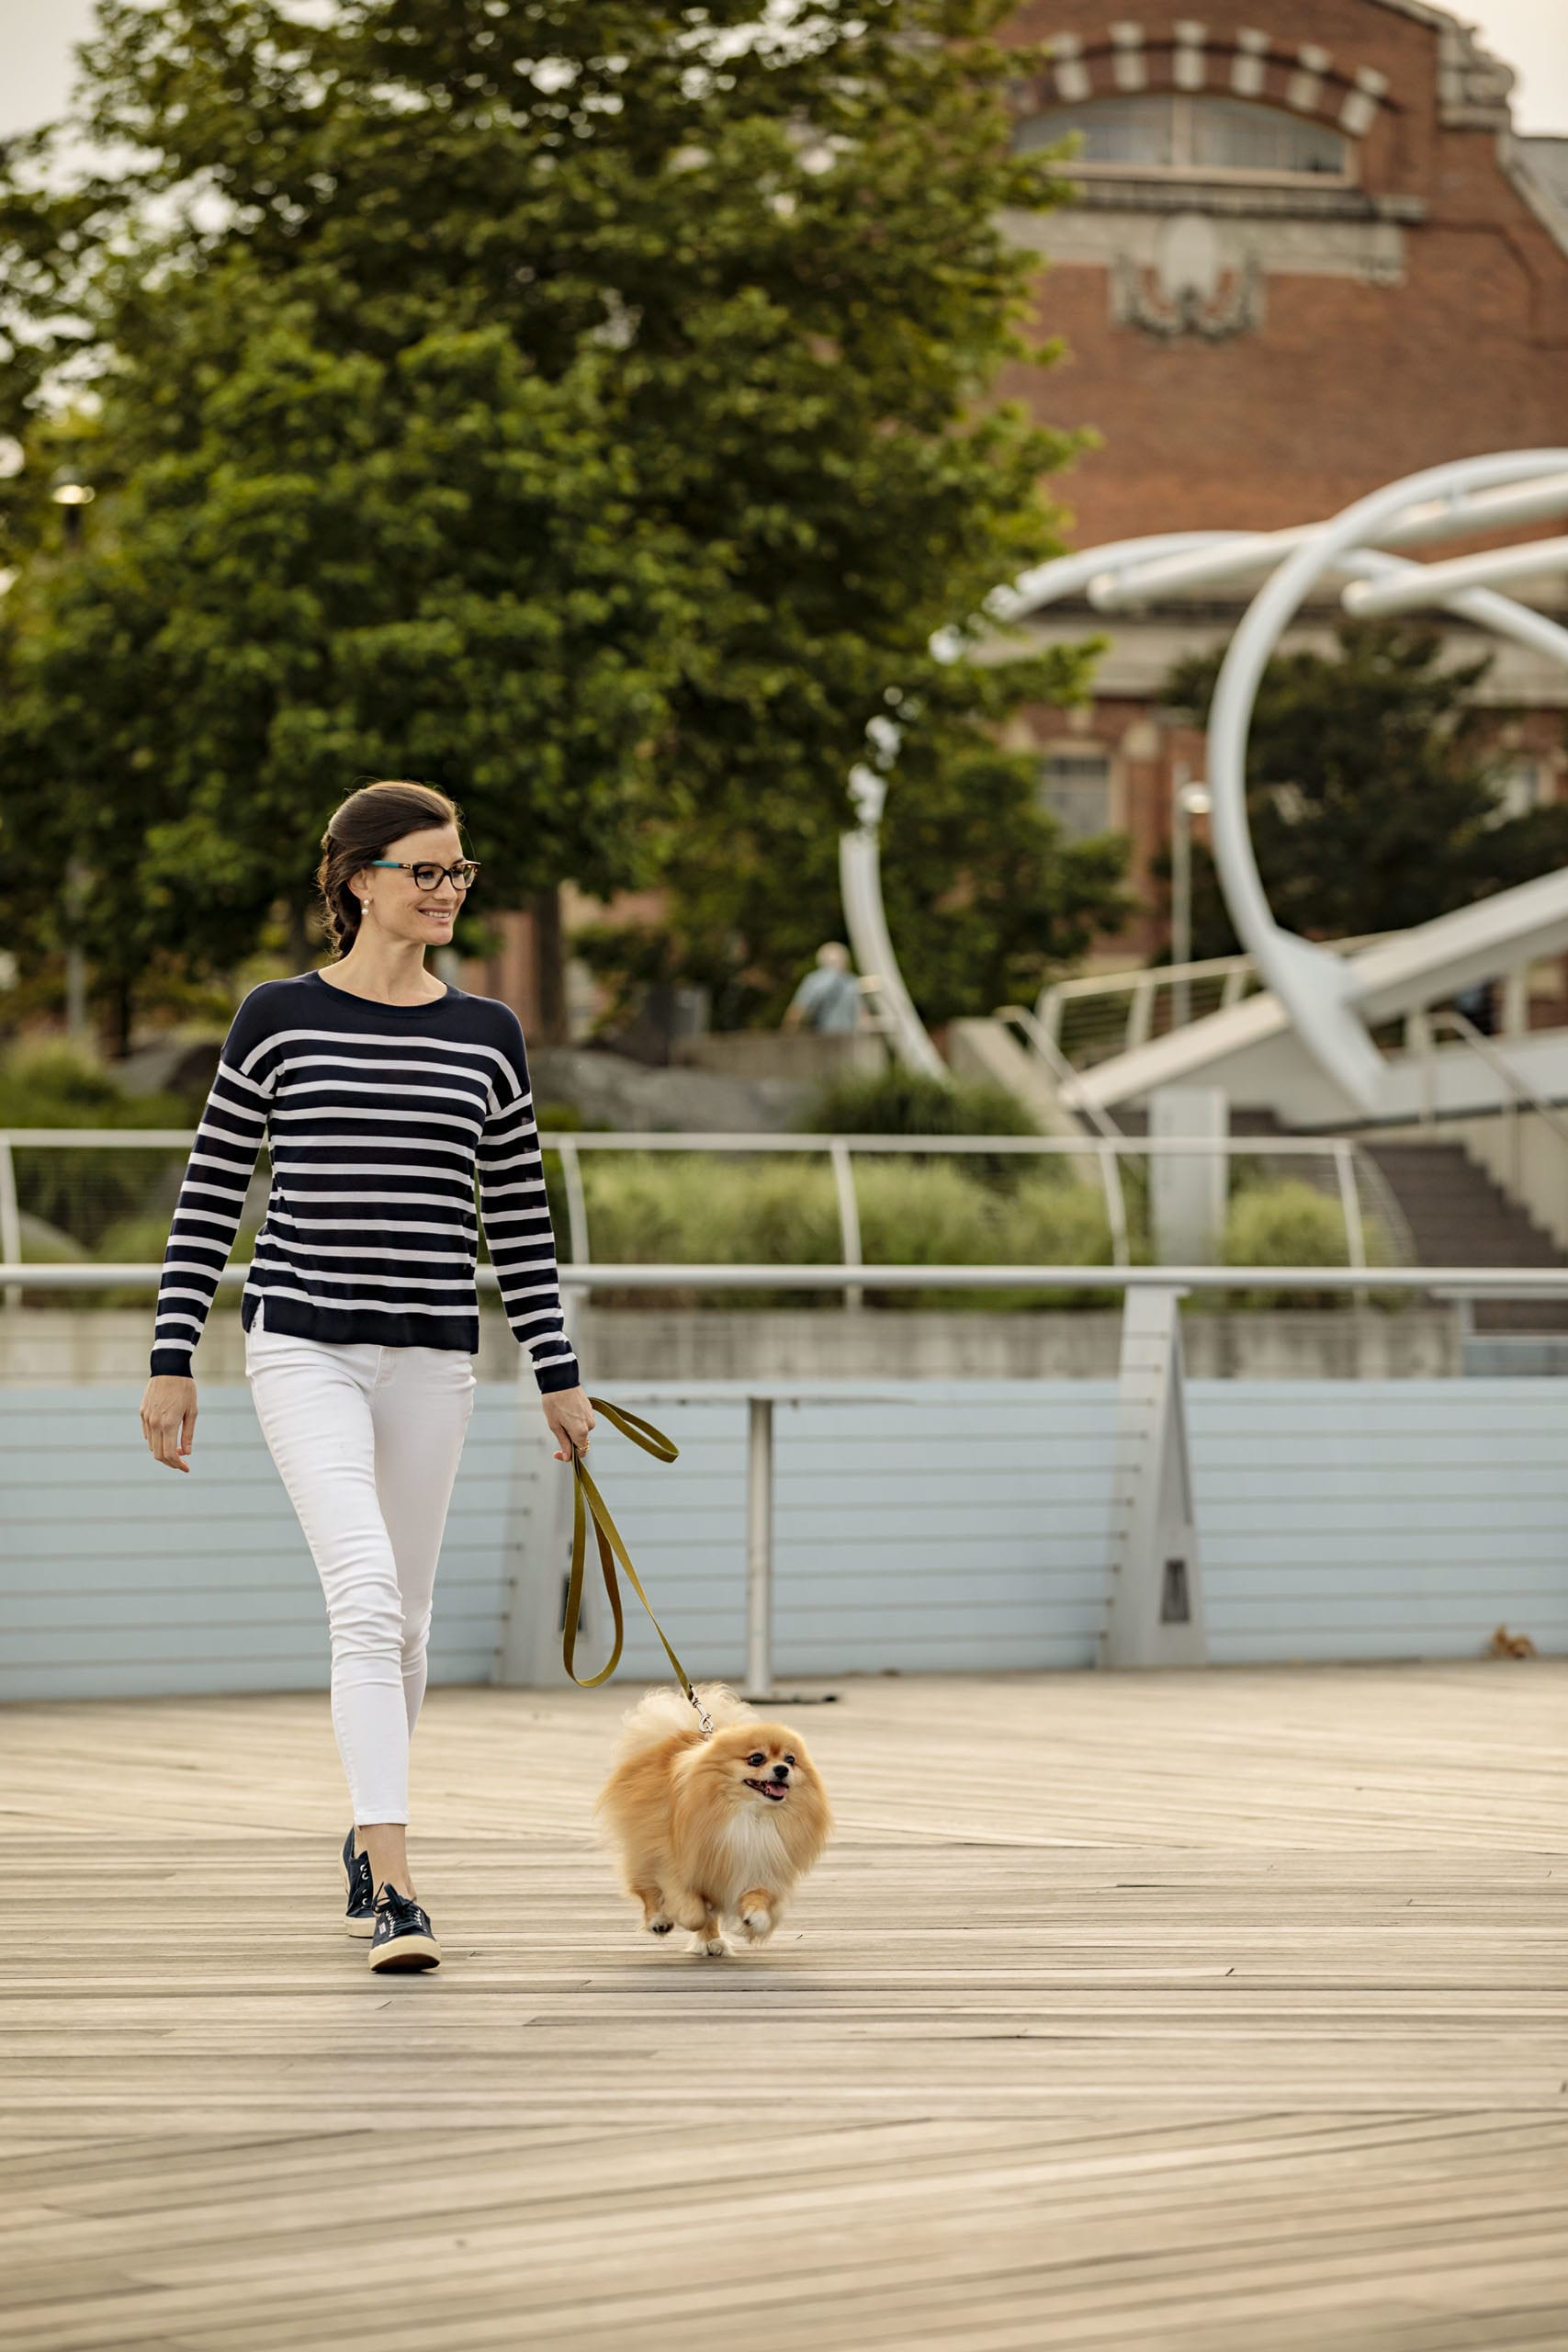 Enjoy Yards Park with its landscaped boardwalk, a splash park and dog run